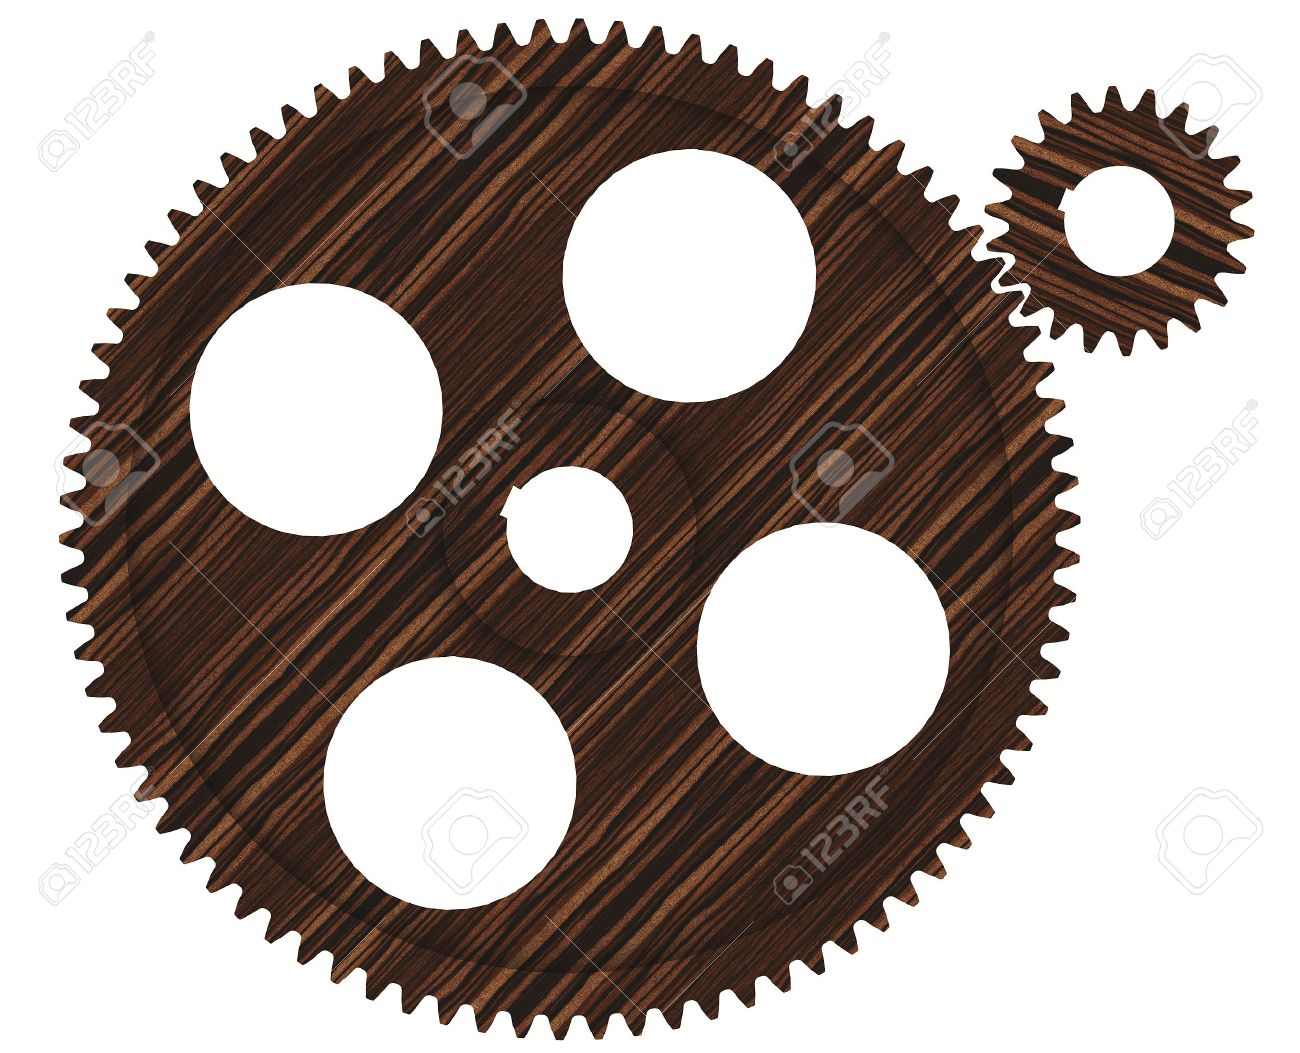 Mechanical Wooden Gear Stock Photo, Picture And Royalty Free Image.